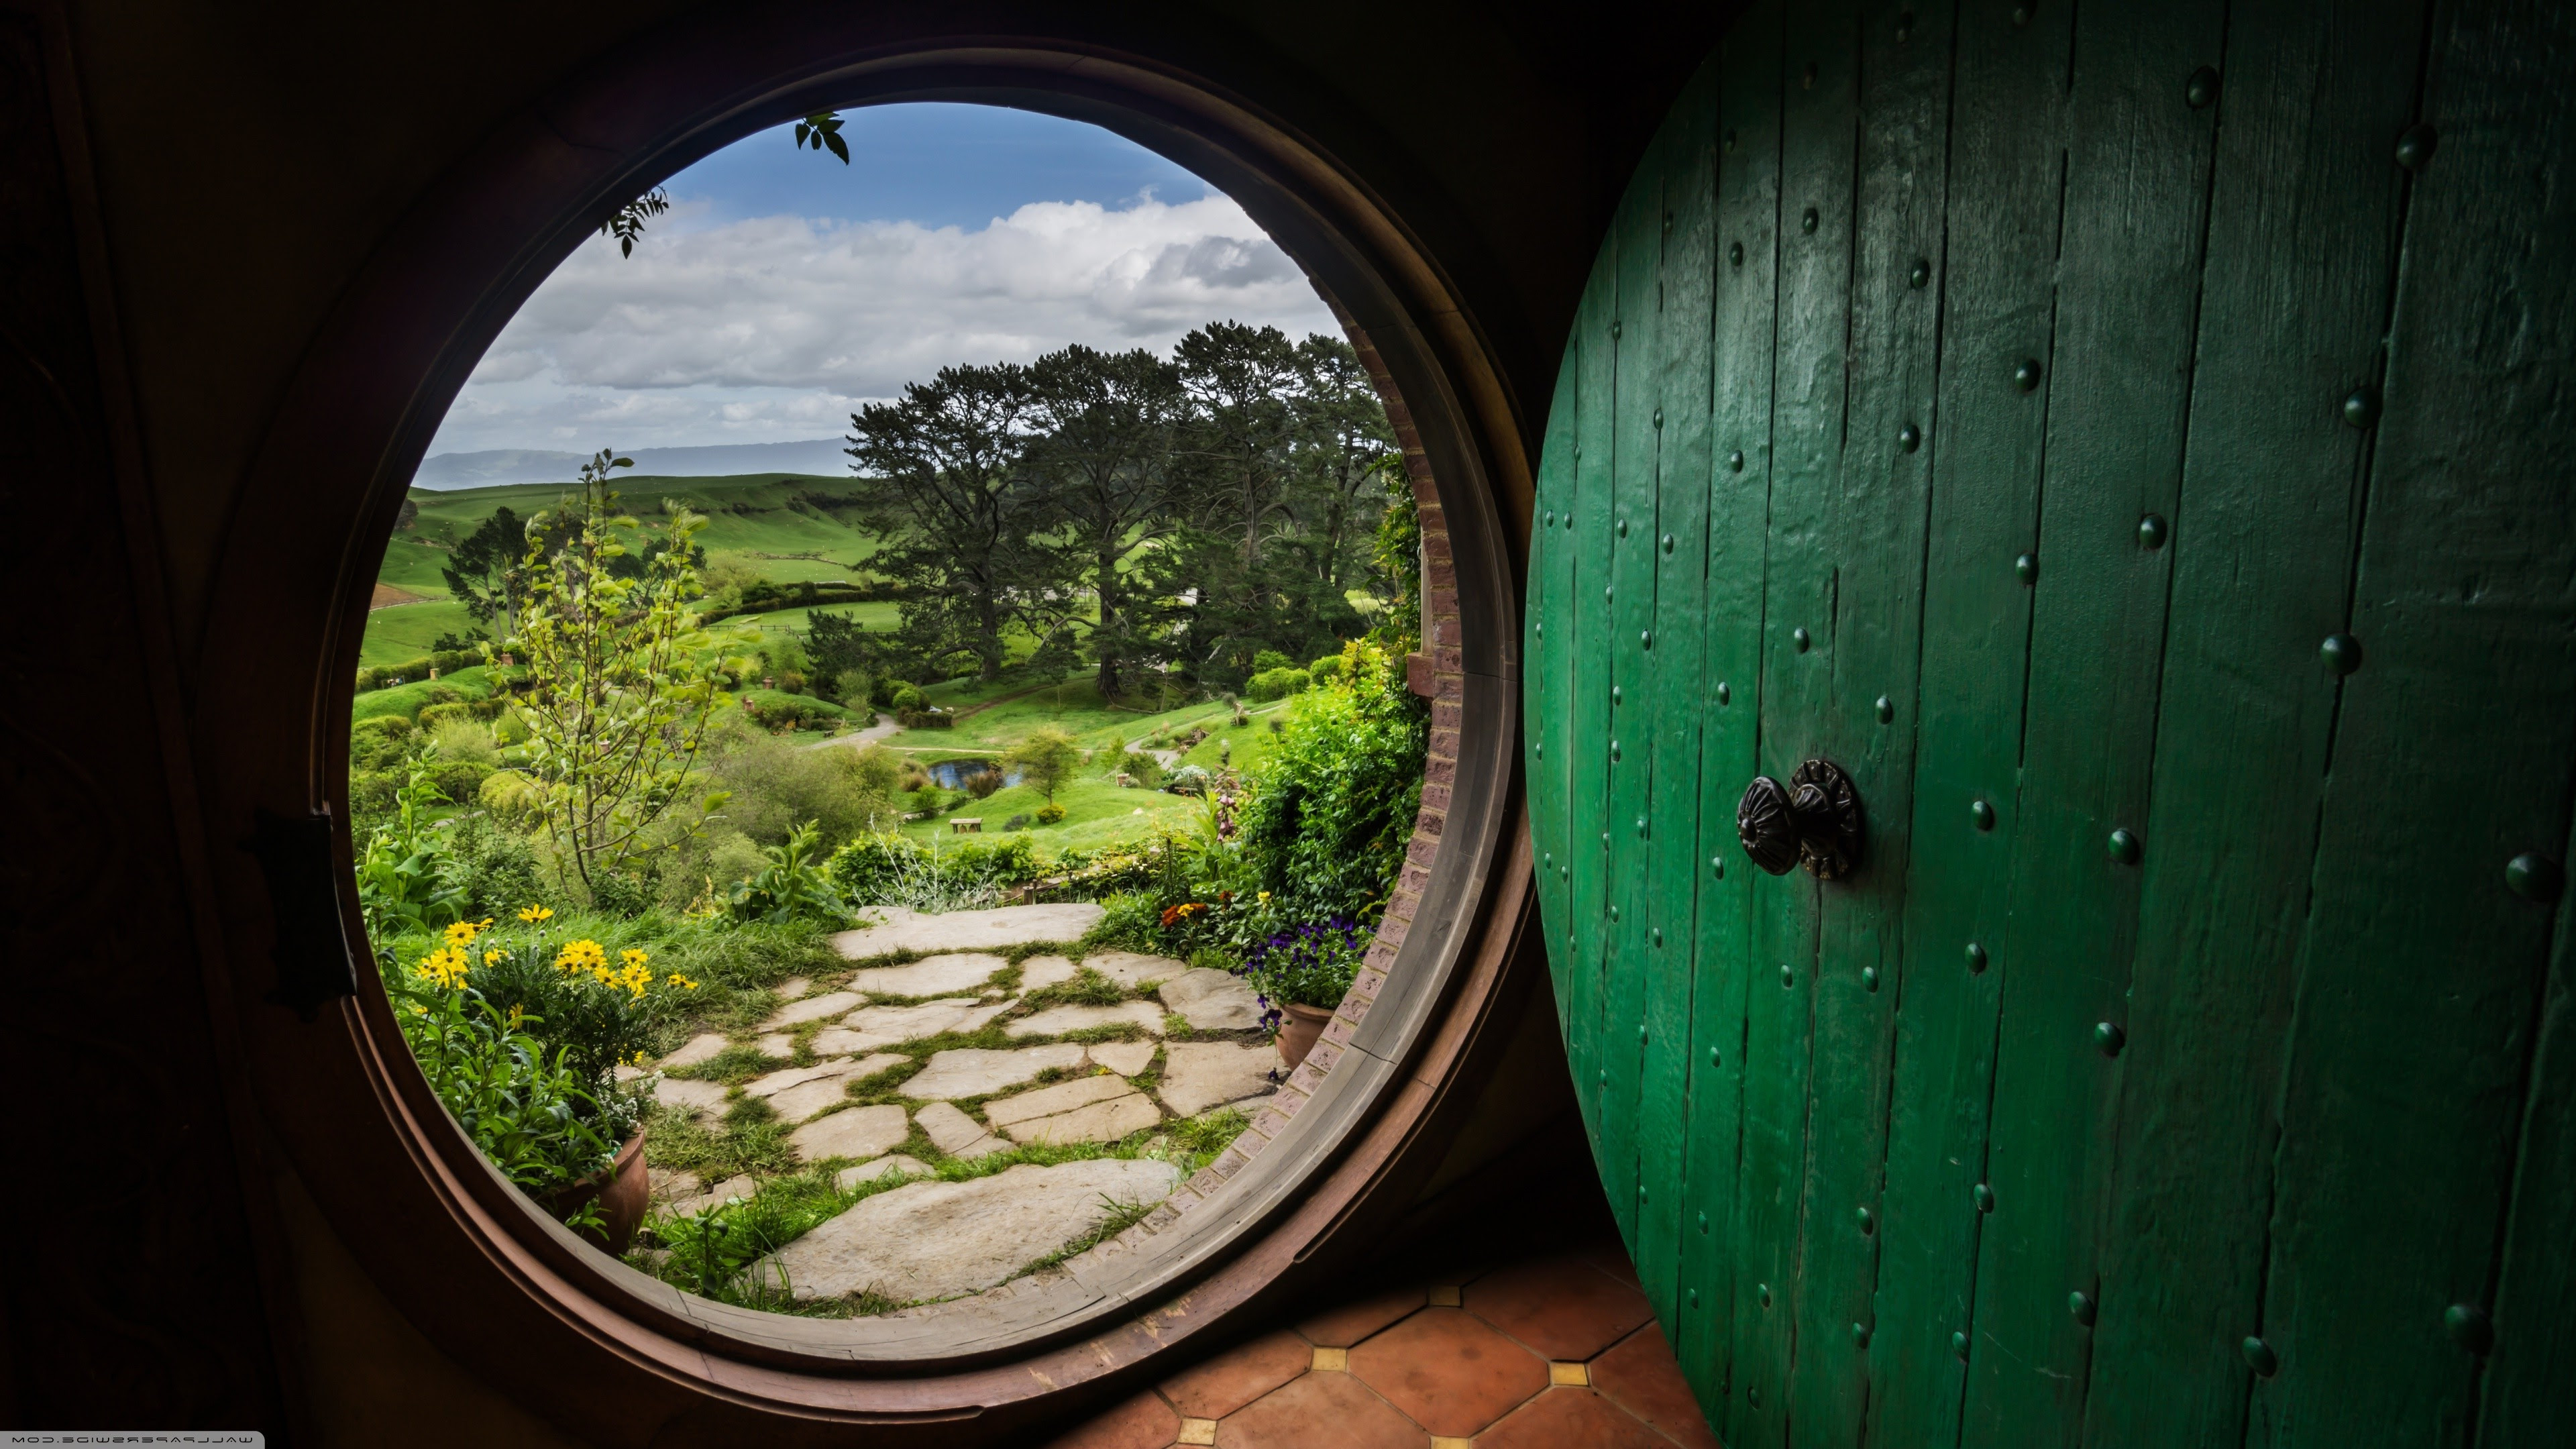 The Hobbit Bag End The Shire The Lord Of The Rings Bilbo